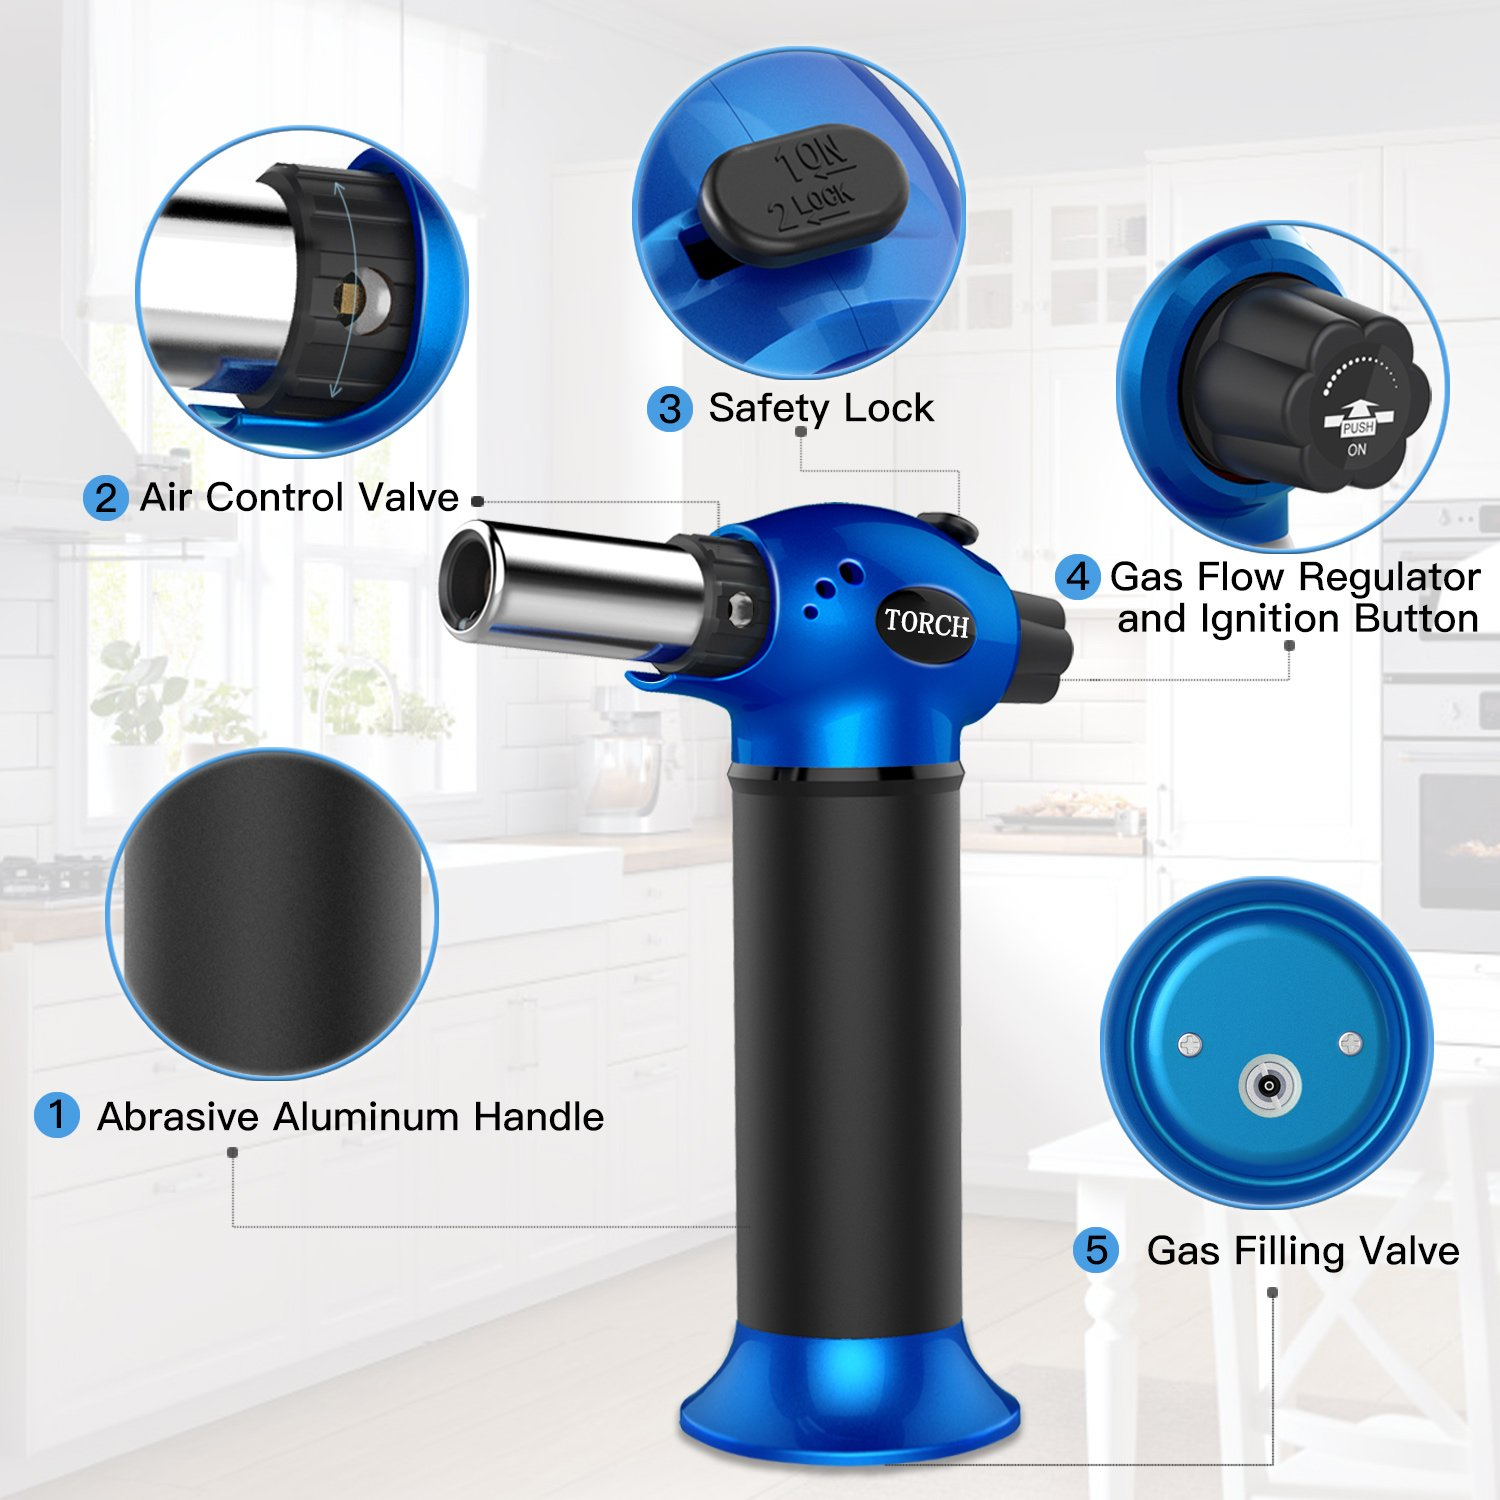 LUCKEA Blow Torch Lighter Kitchen Butane Culinary Torch Chef Cooking Torch Refillable Adjustable Flame Lighter with Two Type of Flame and Safety Lock and for Crème Brûlée, BBQ and Baking - Blue by Luckea (Image #3)